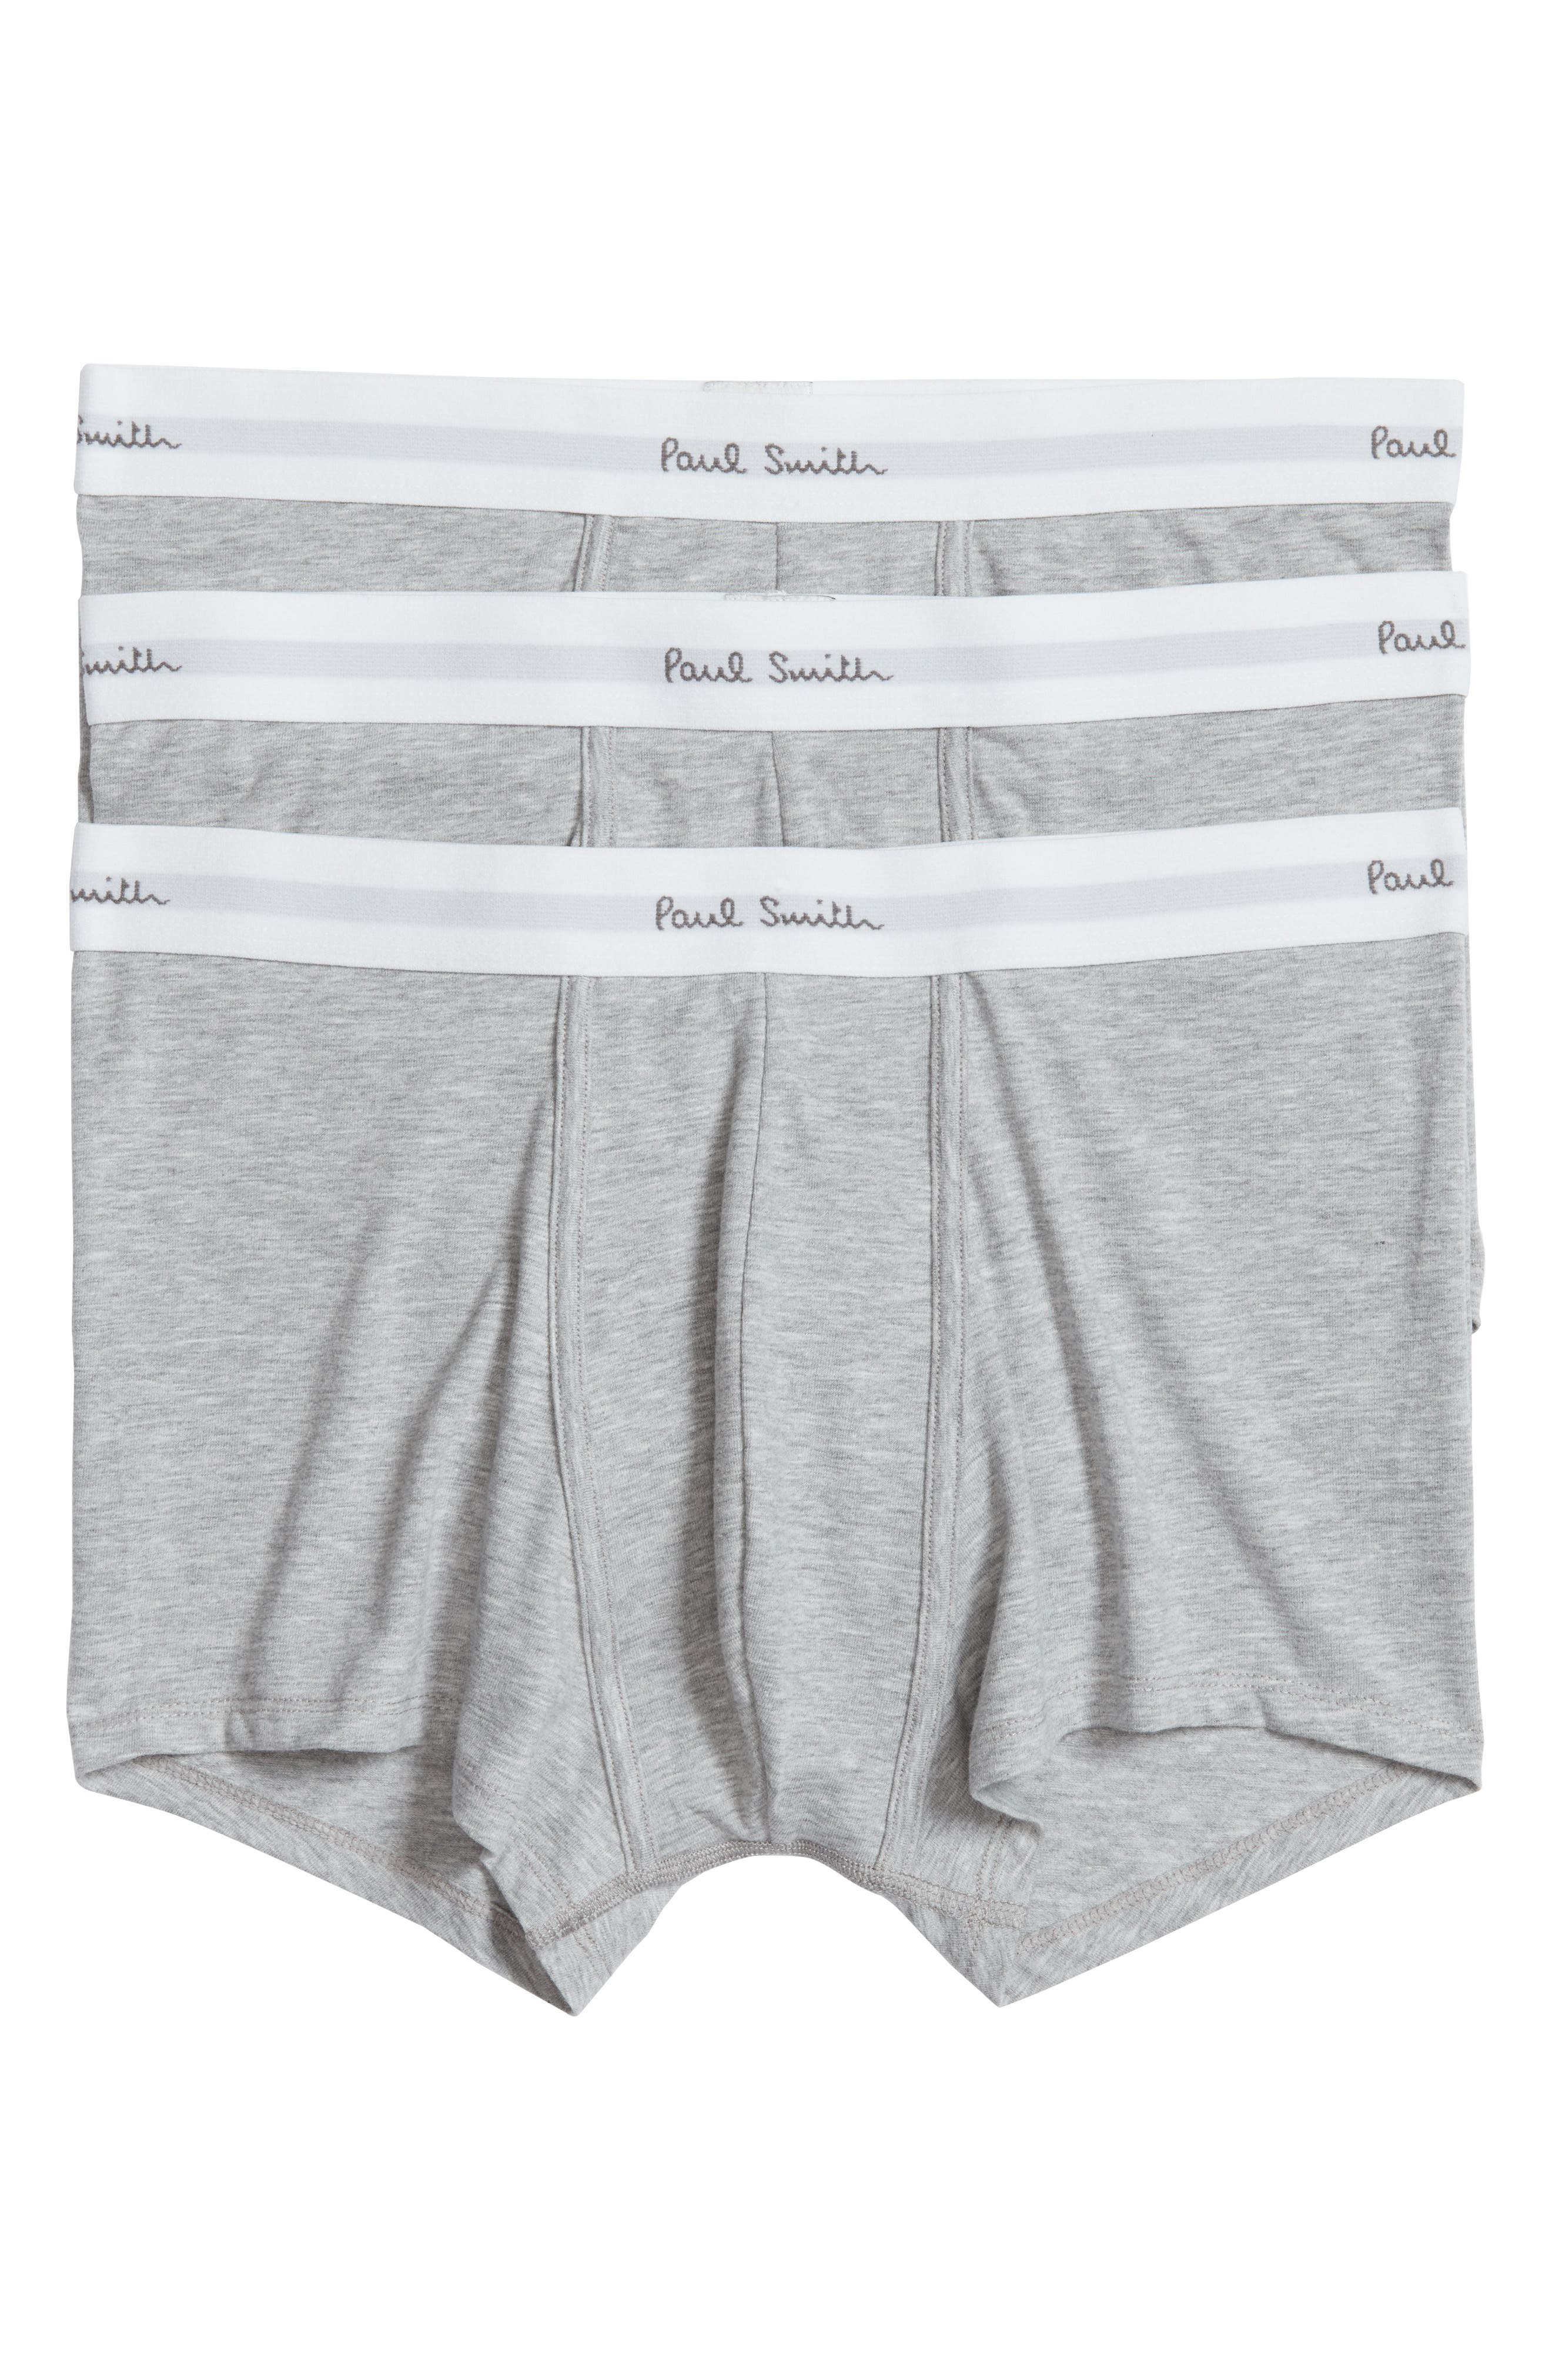 Paul Smith 3-Pack Square Cut Trunks